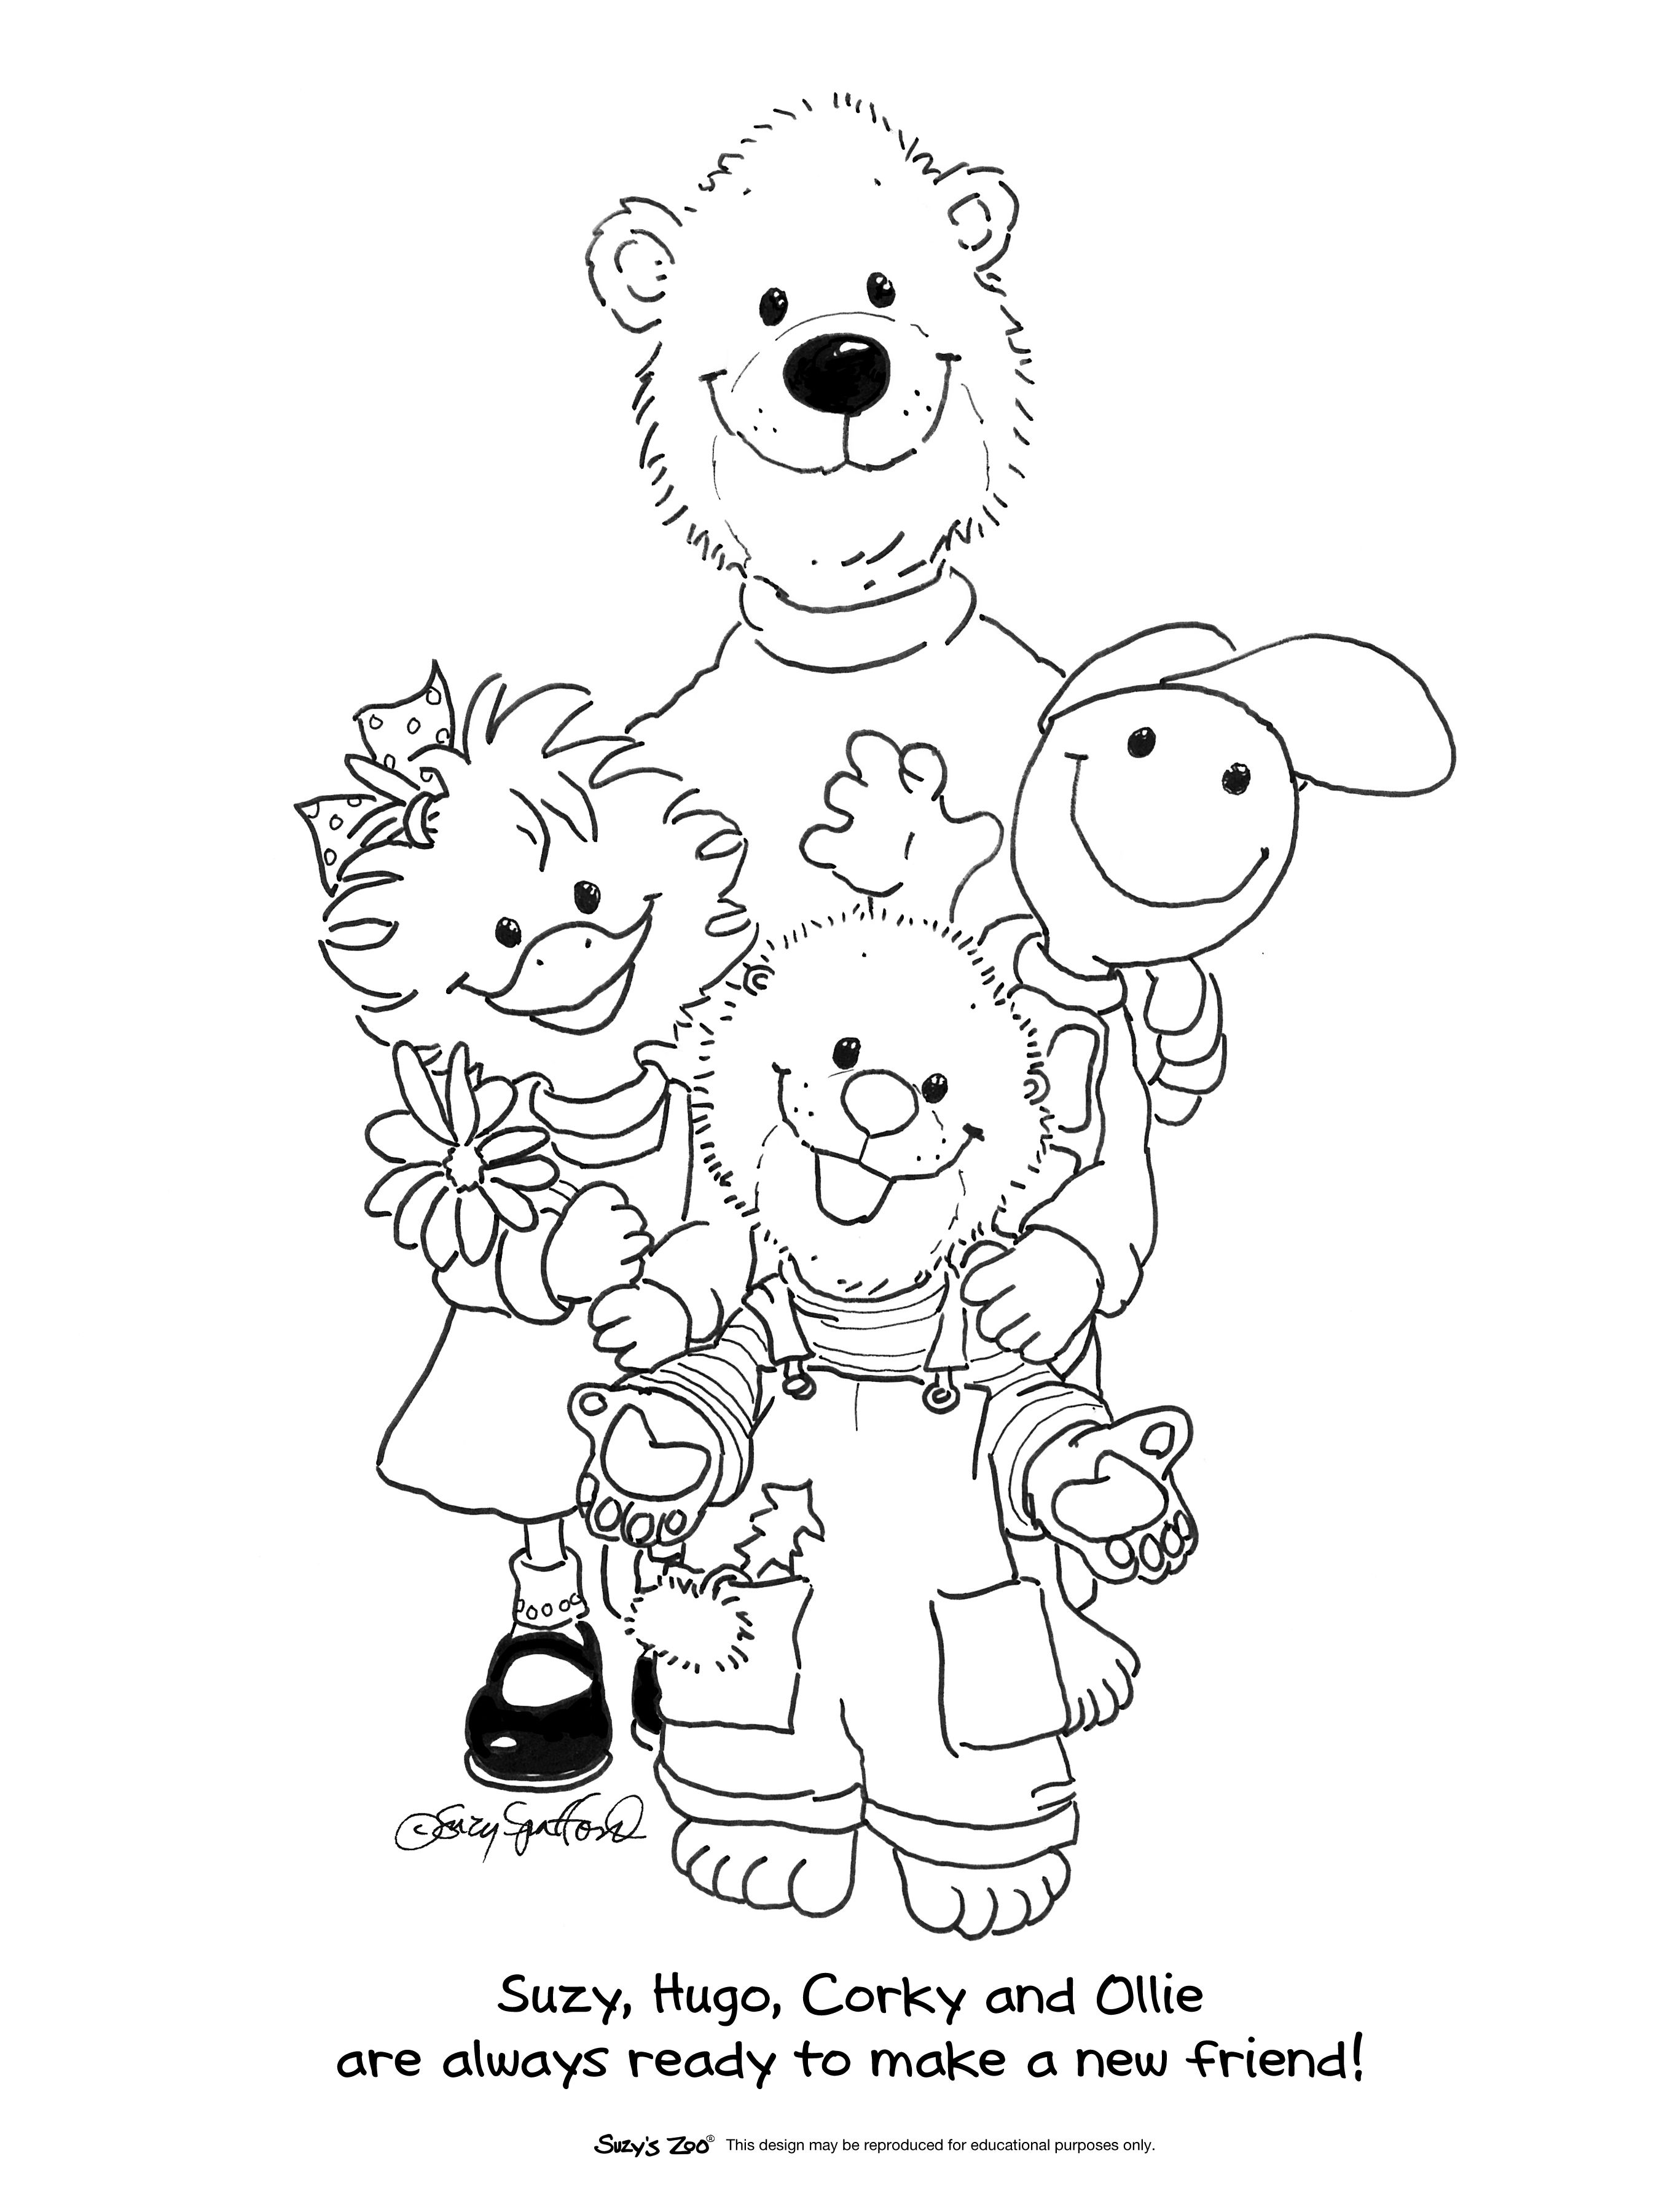 Good Friends Jpg 2 700 3 600 Pixels Zoo Animal Coloring Pages Animal Coloring Pages Coloring Pages